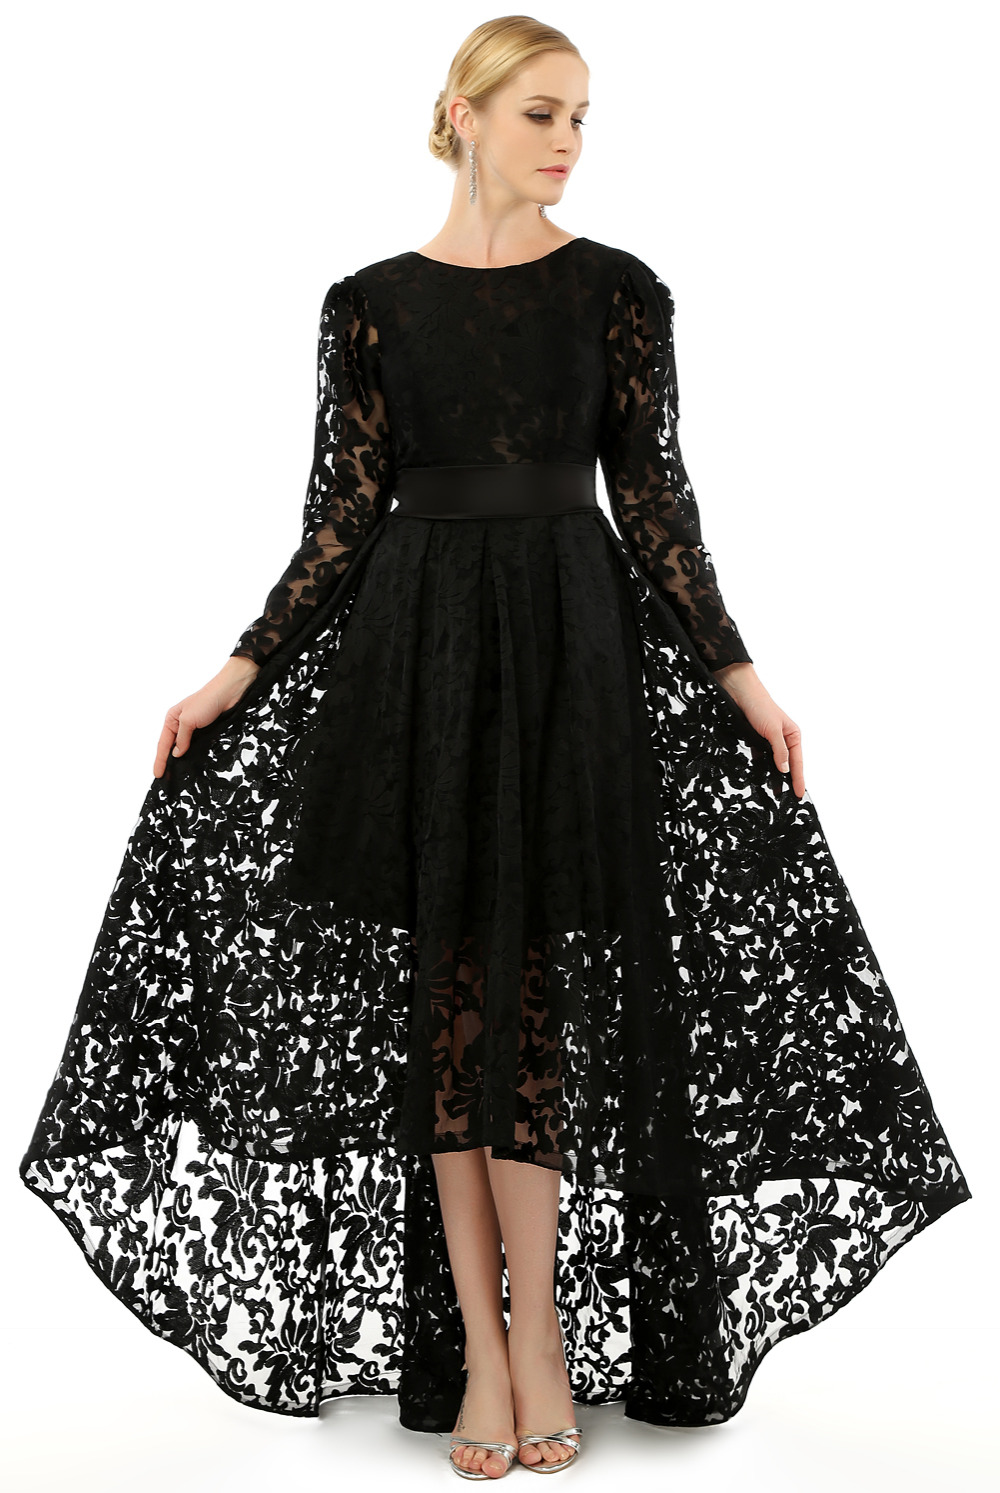 Short Black Lace Long Dress with Sleeves